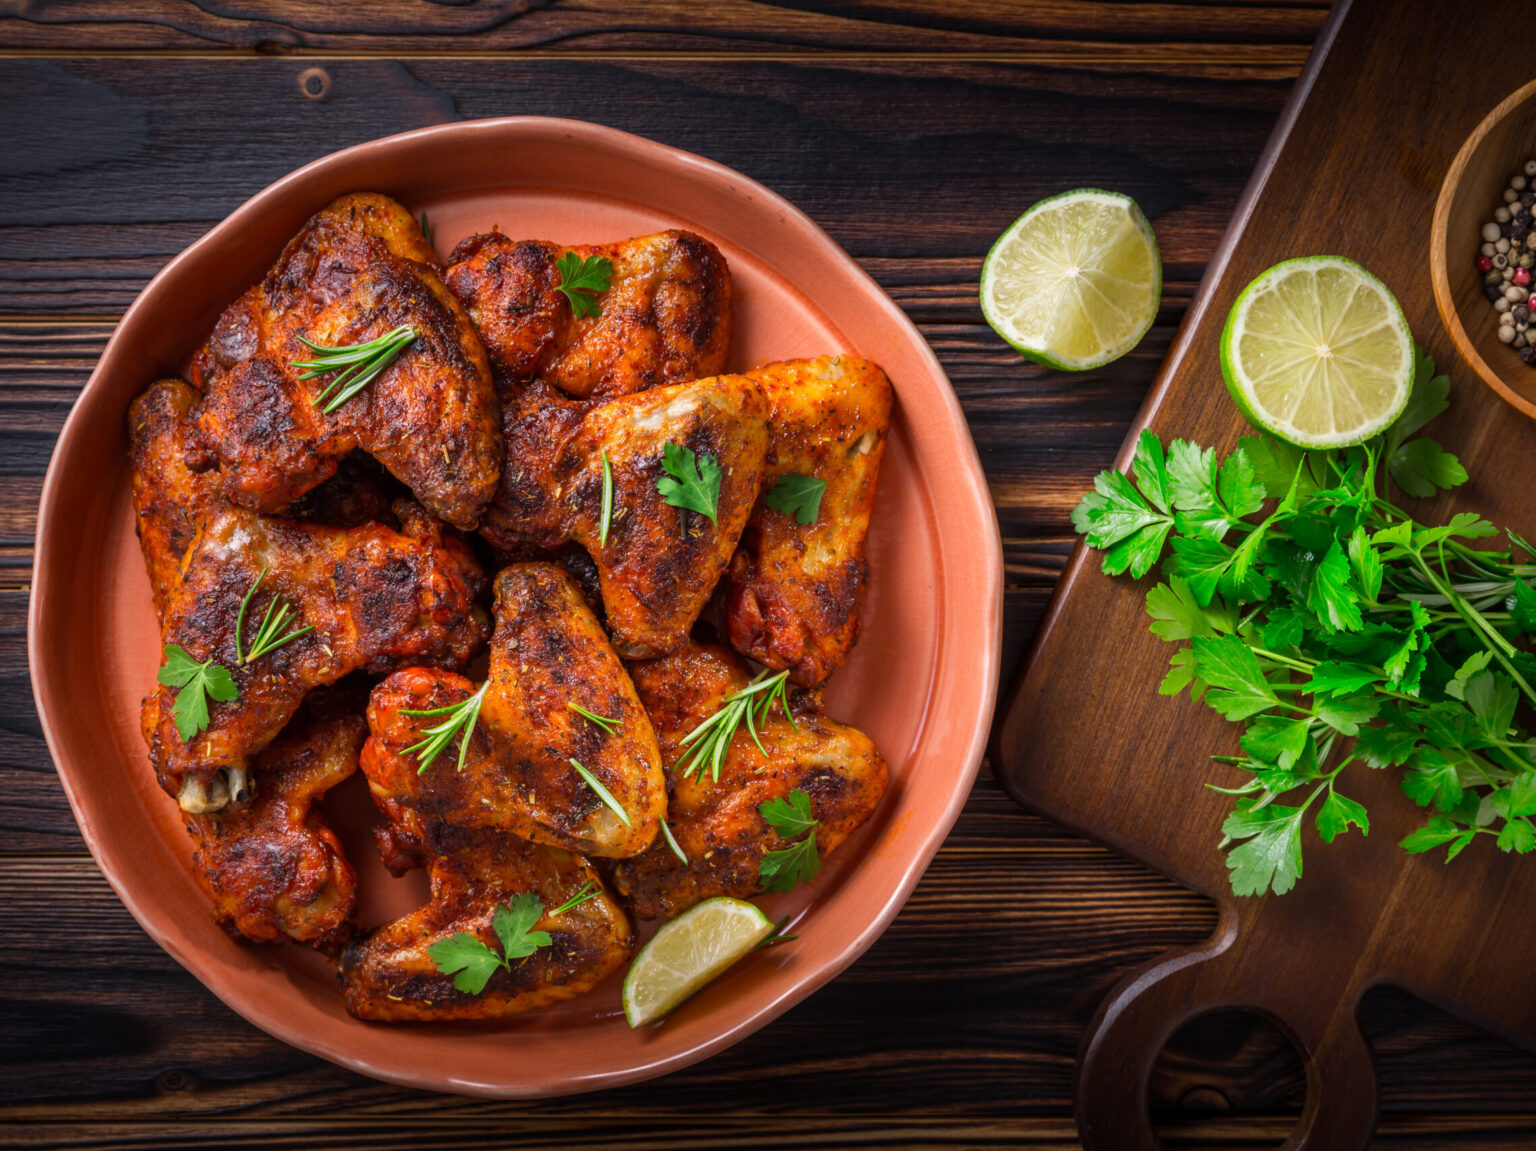 Hot and Spicey Buffalo Chicken Wings with ingredients on wooden background